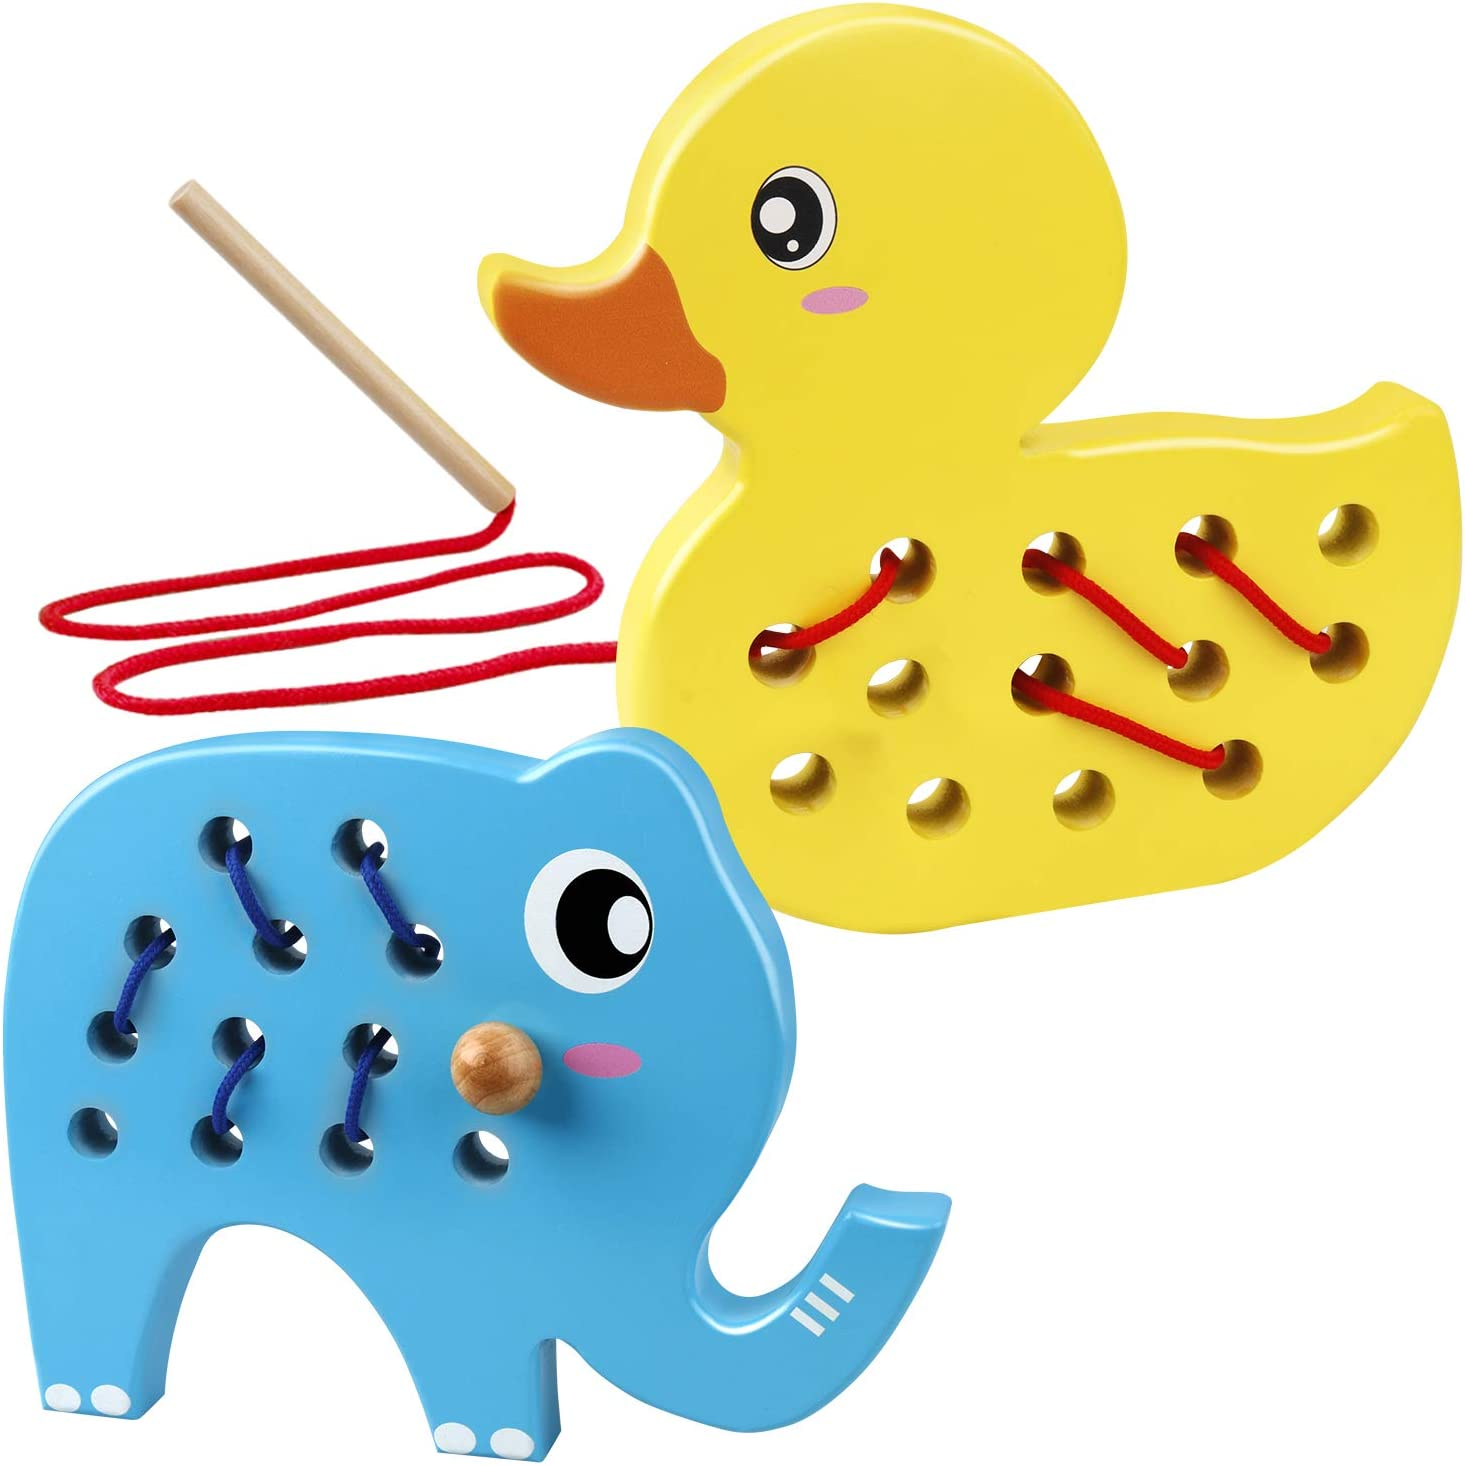 Coogam Wooden Lacing Duck and Elephant, 2PCS Animals Fine Motor Skills Threading Toys, Airplane Car Travel Game Montessori Cognition Preschool Puzzle Gift for 1 2 3 Years Old Toddlers Baby Kids